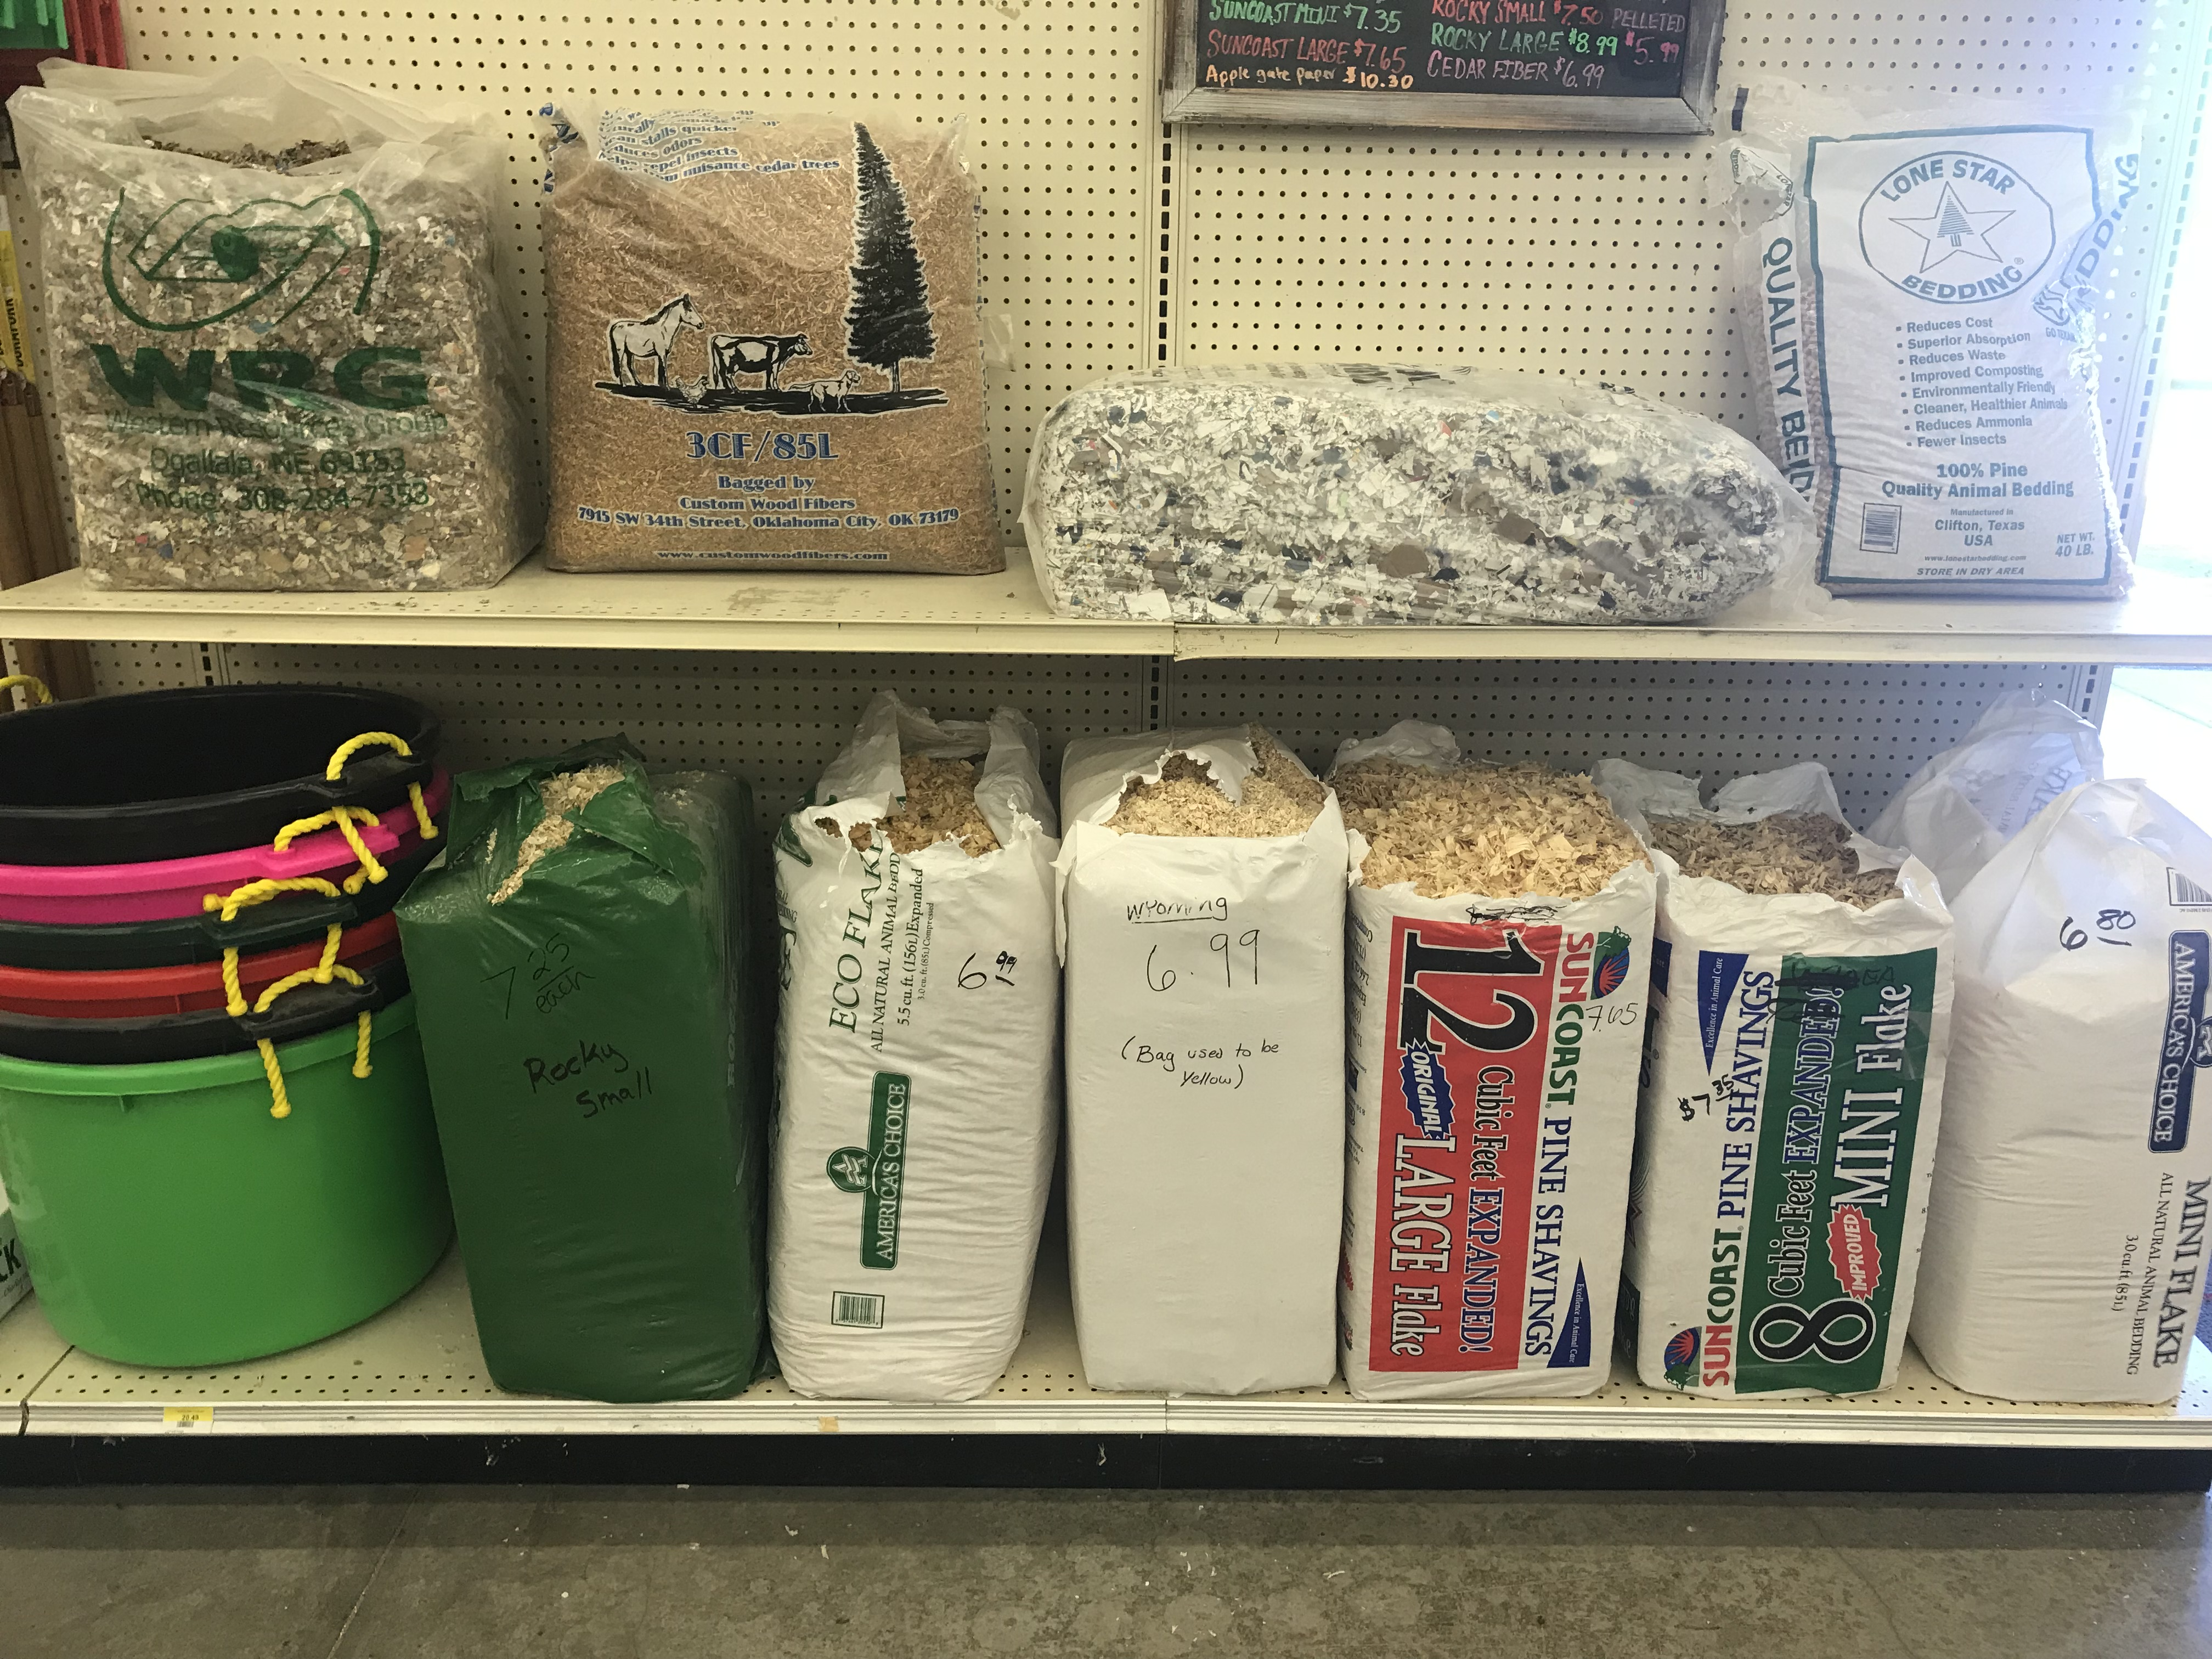 Bedding Materials for Pets and Livestock